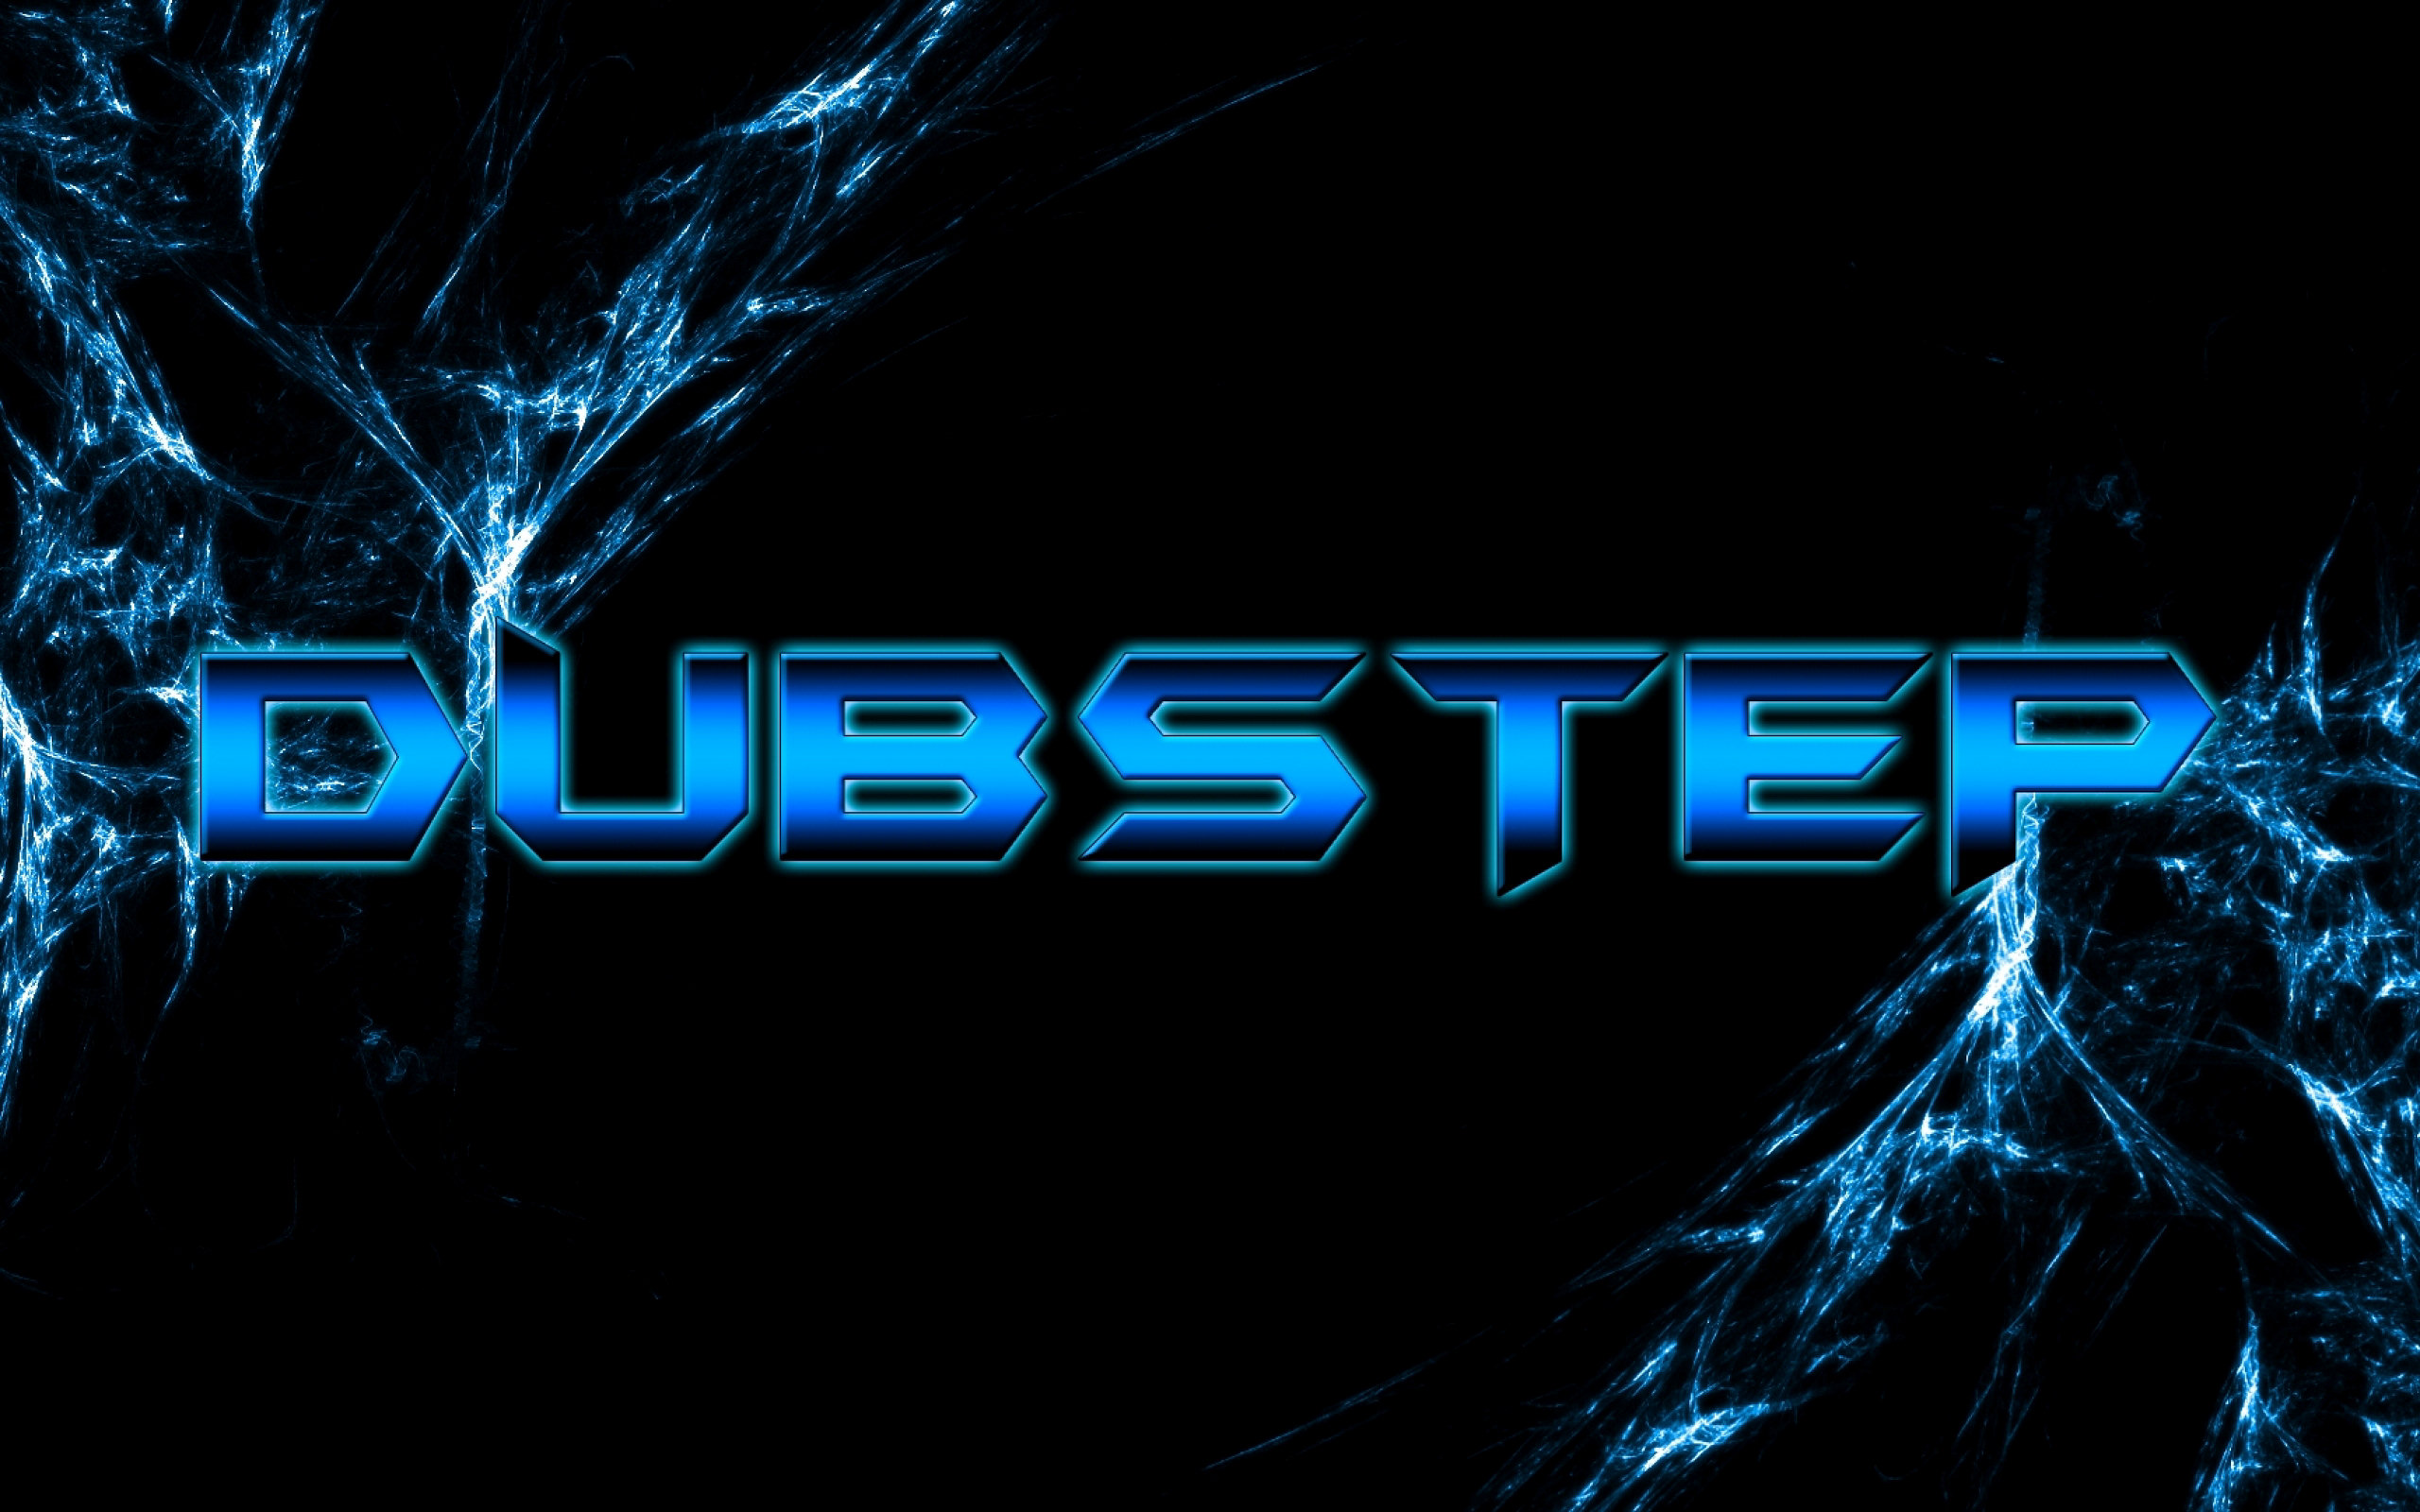 95 Dubstep HD Wallpapers | Backgrounds - Wallpaper Abyss